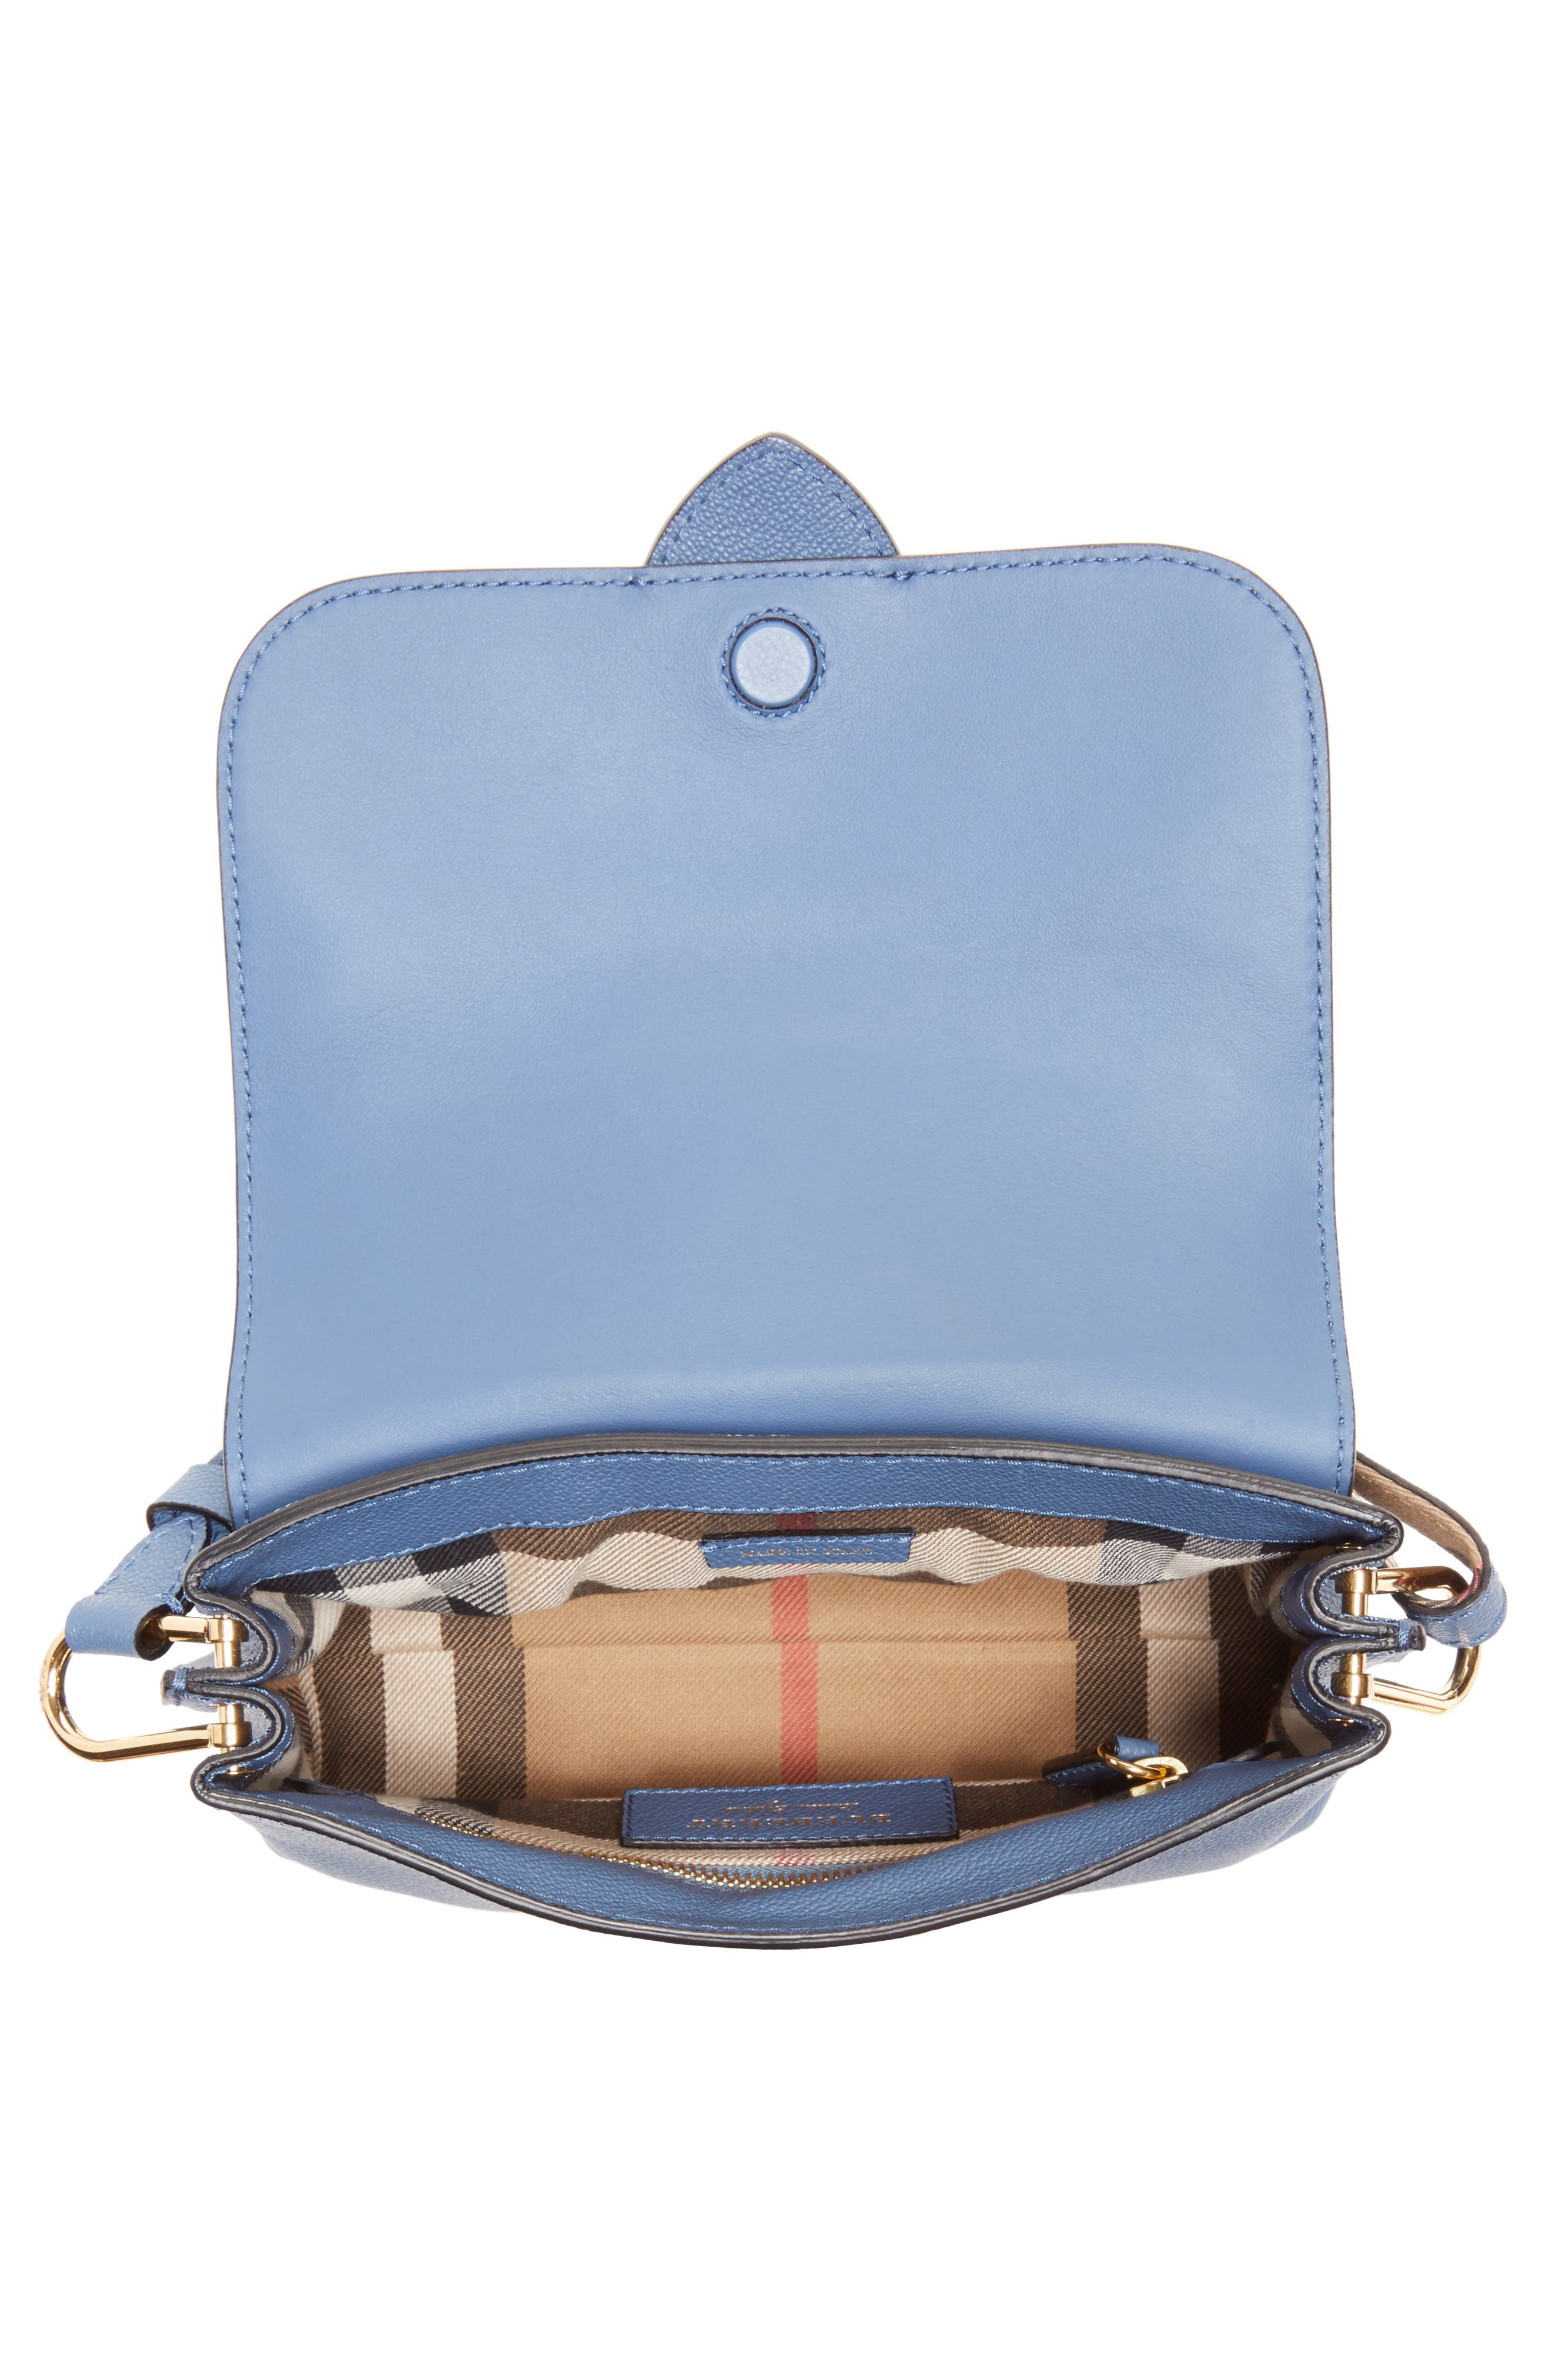 Small Buckle Leather Crossbody Bag,                             Alternate thumbnail 4, color,                             Slate Blue